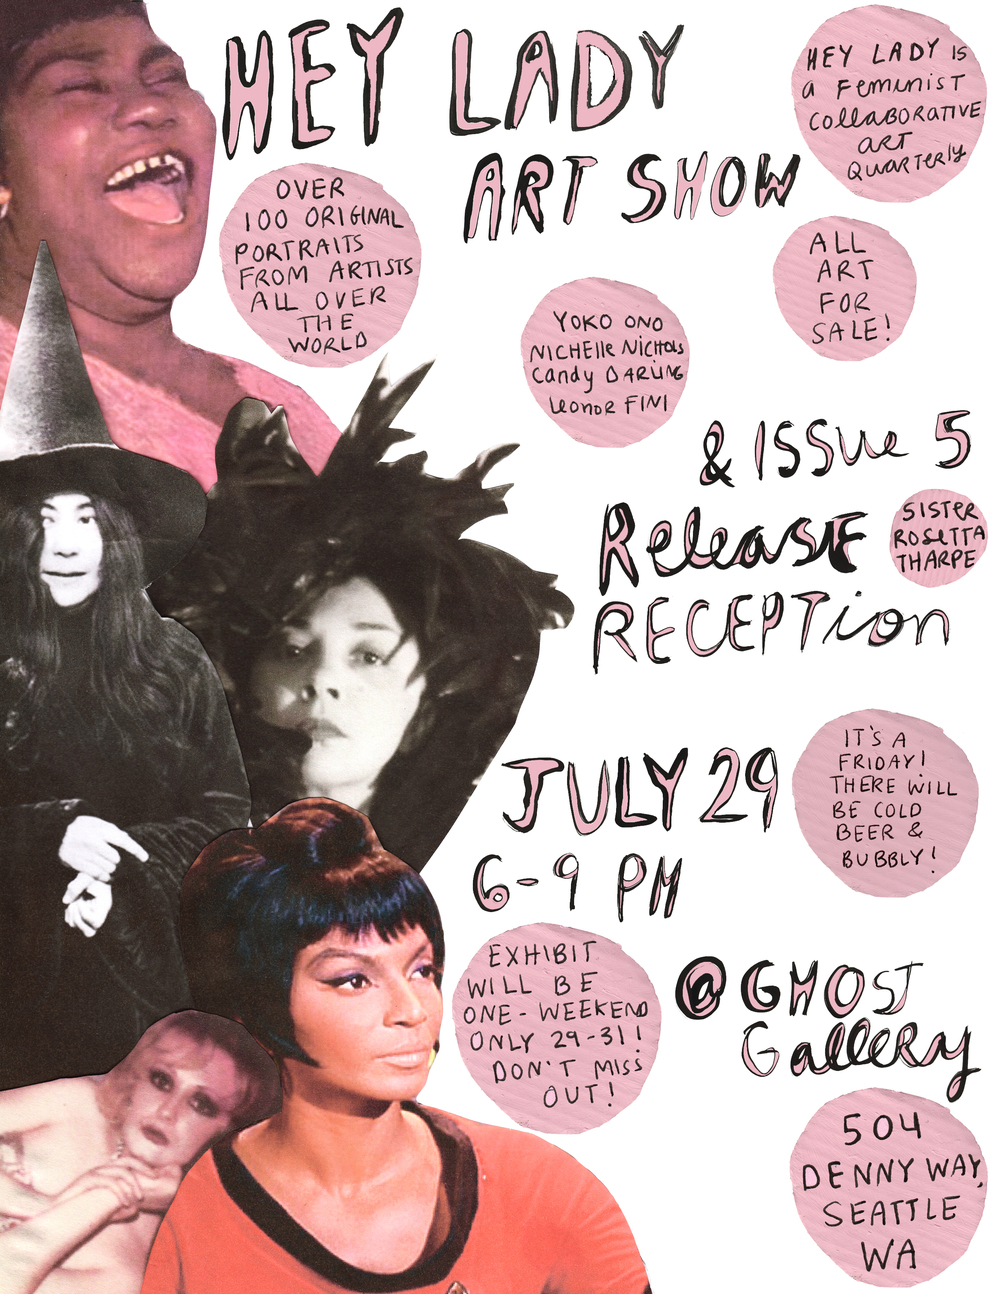 hey lady art show // july 29-31 // ghost gallery in seattle, washington